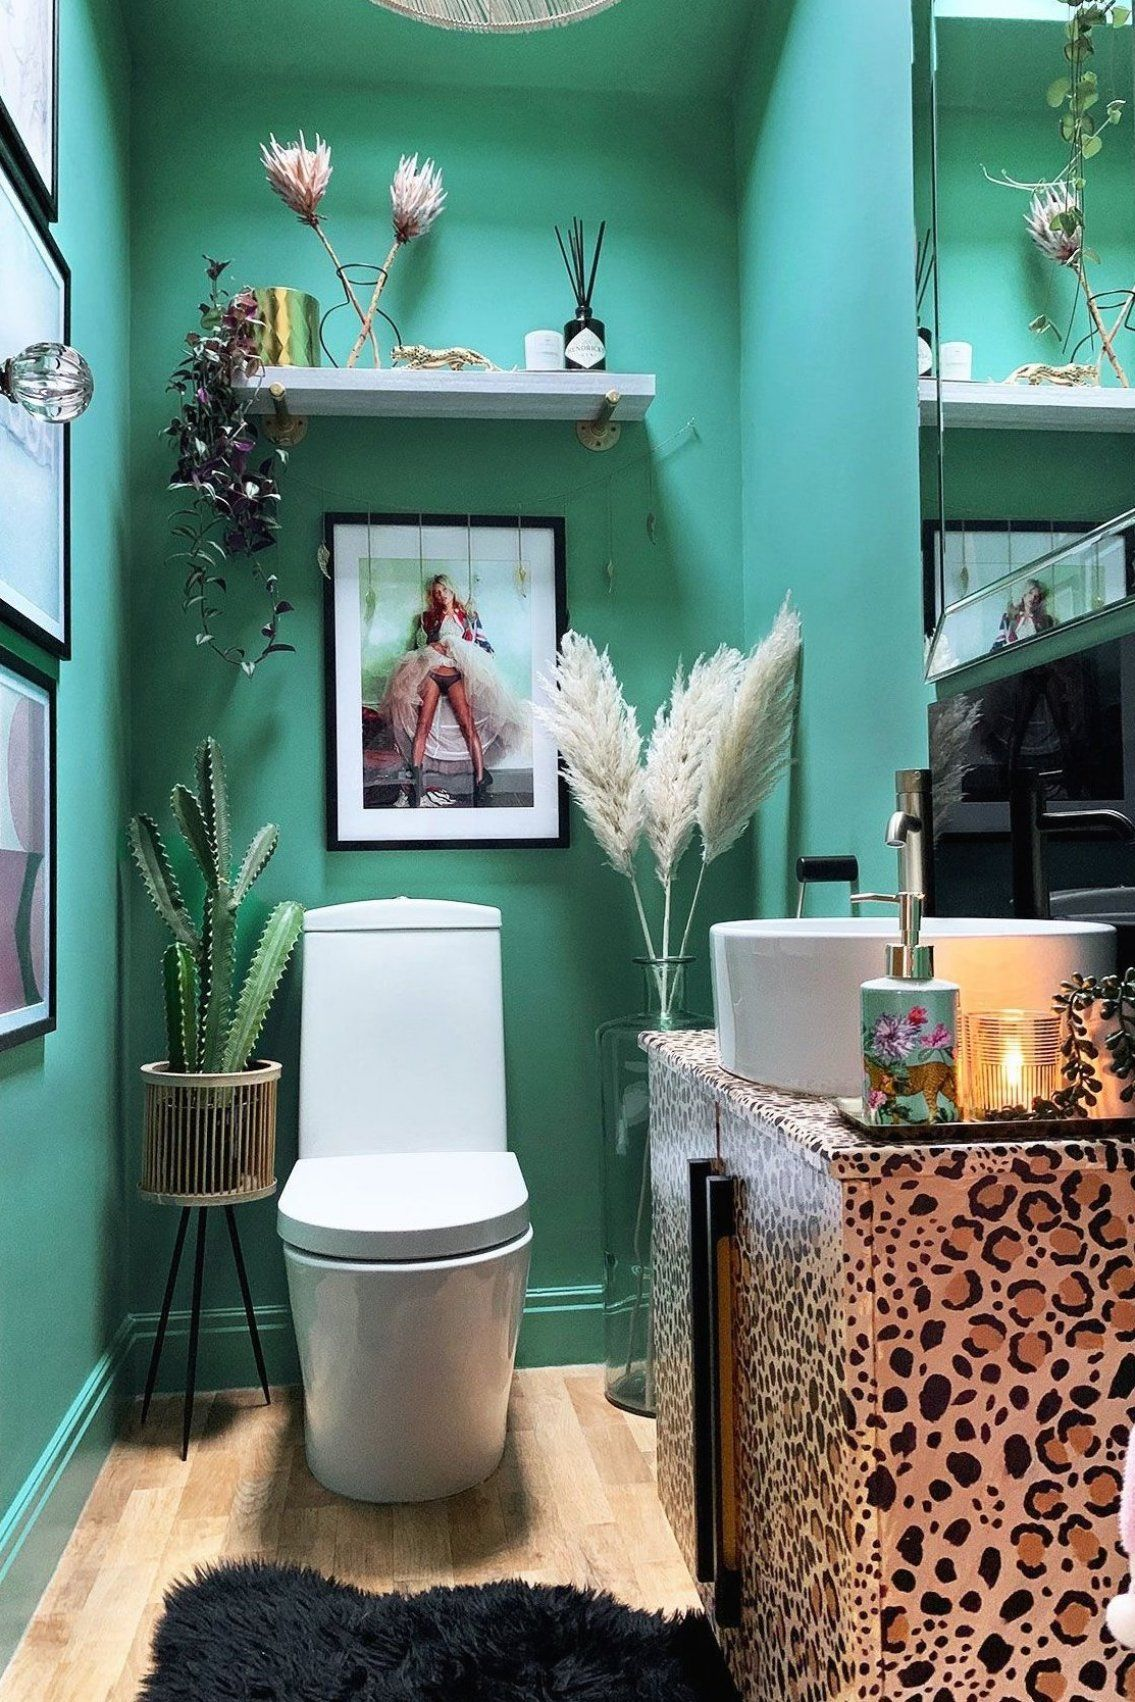 25+ Quirky bathroom wall cabinets inspiration